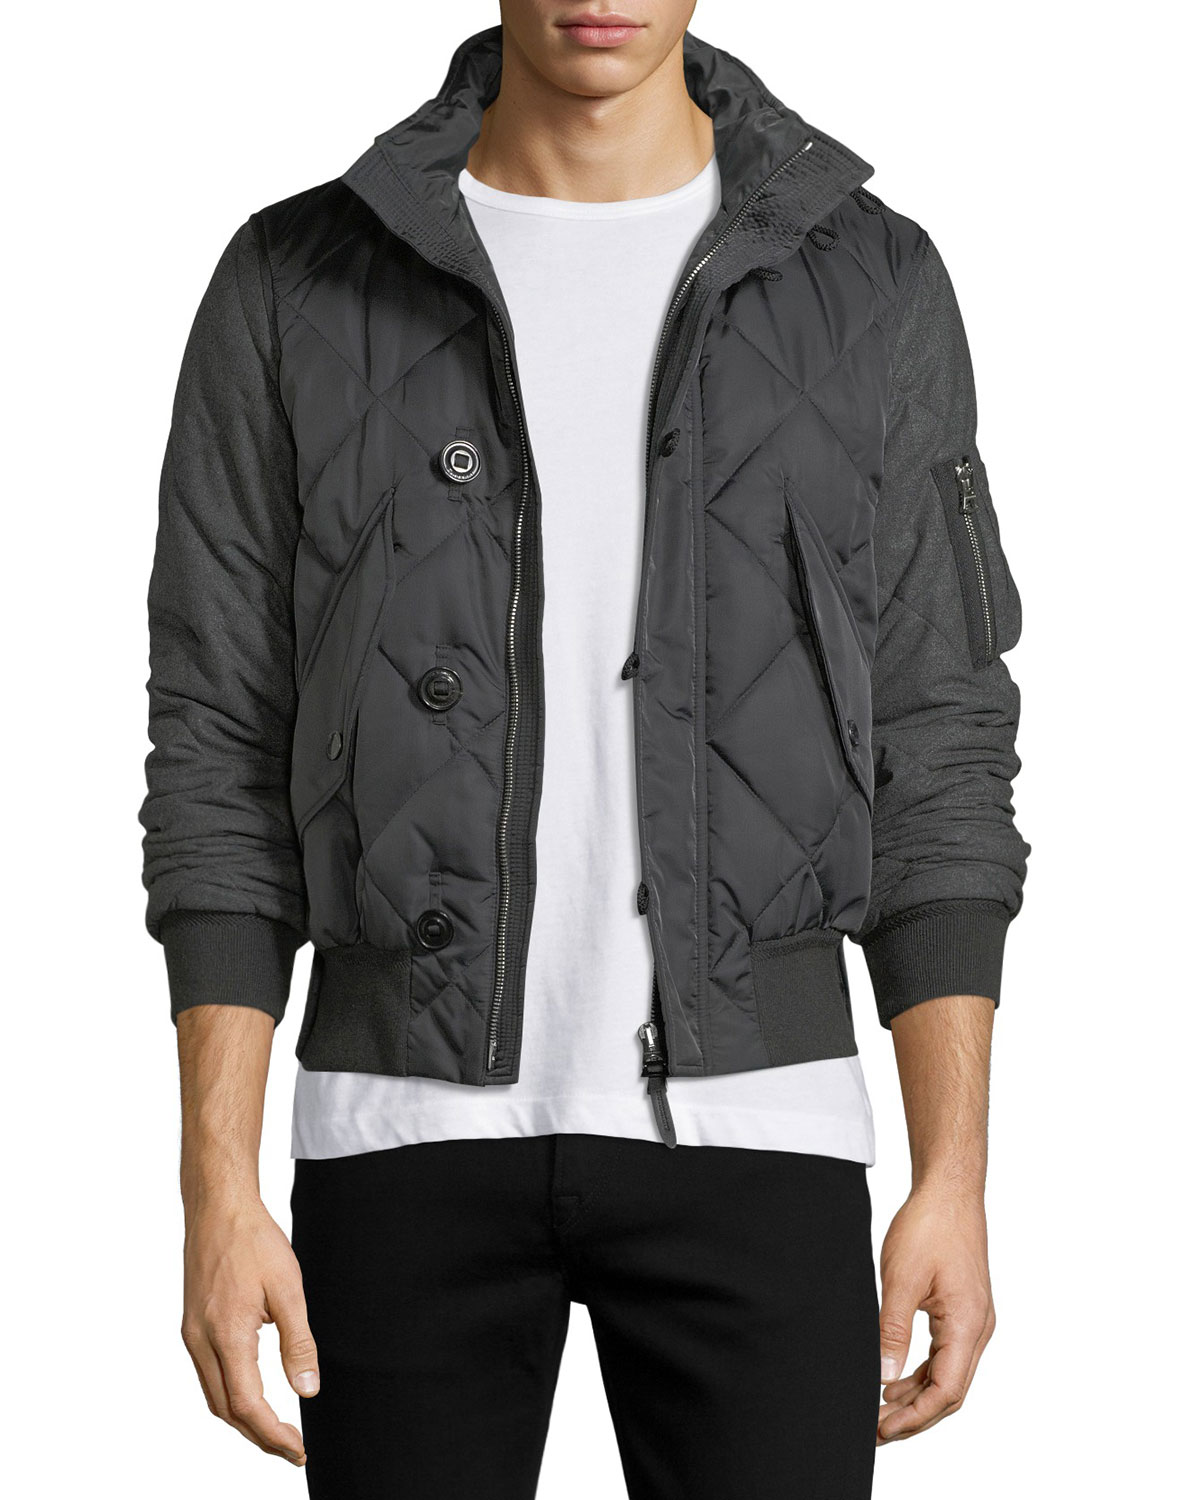 Burberry Quilted Nylon Wool Bomber Jacket Neiman Marcus